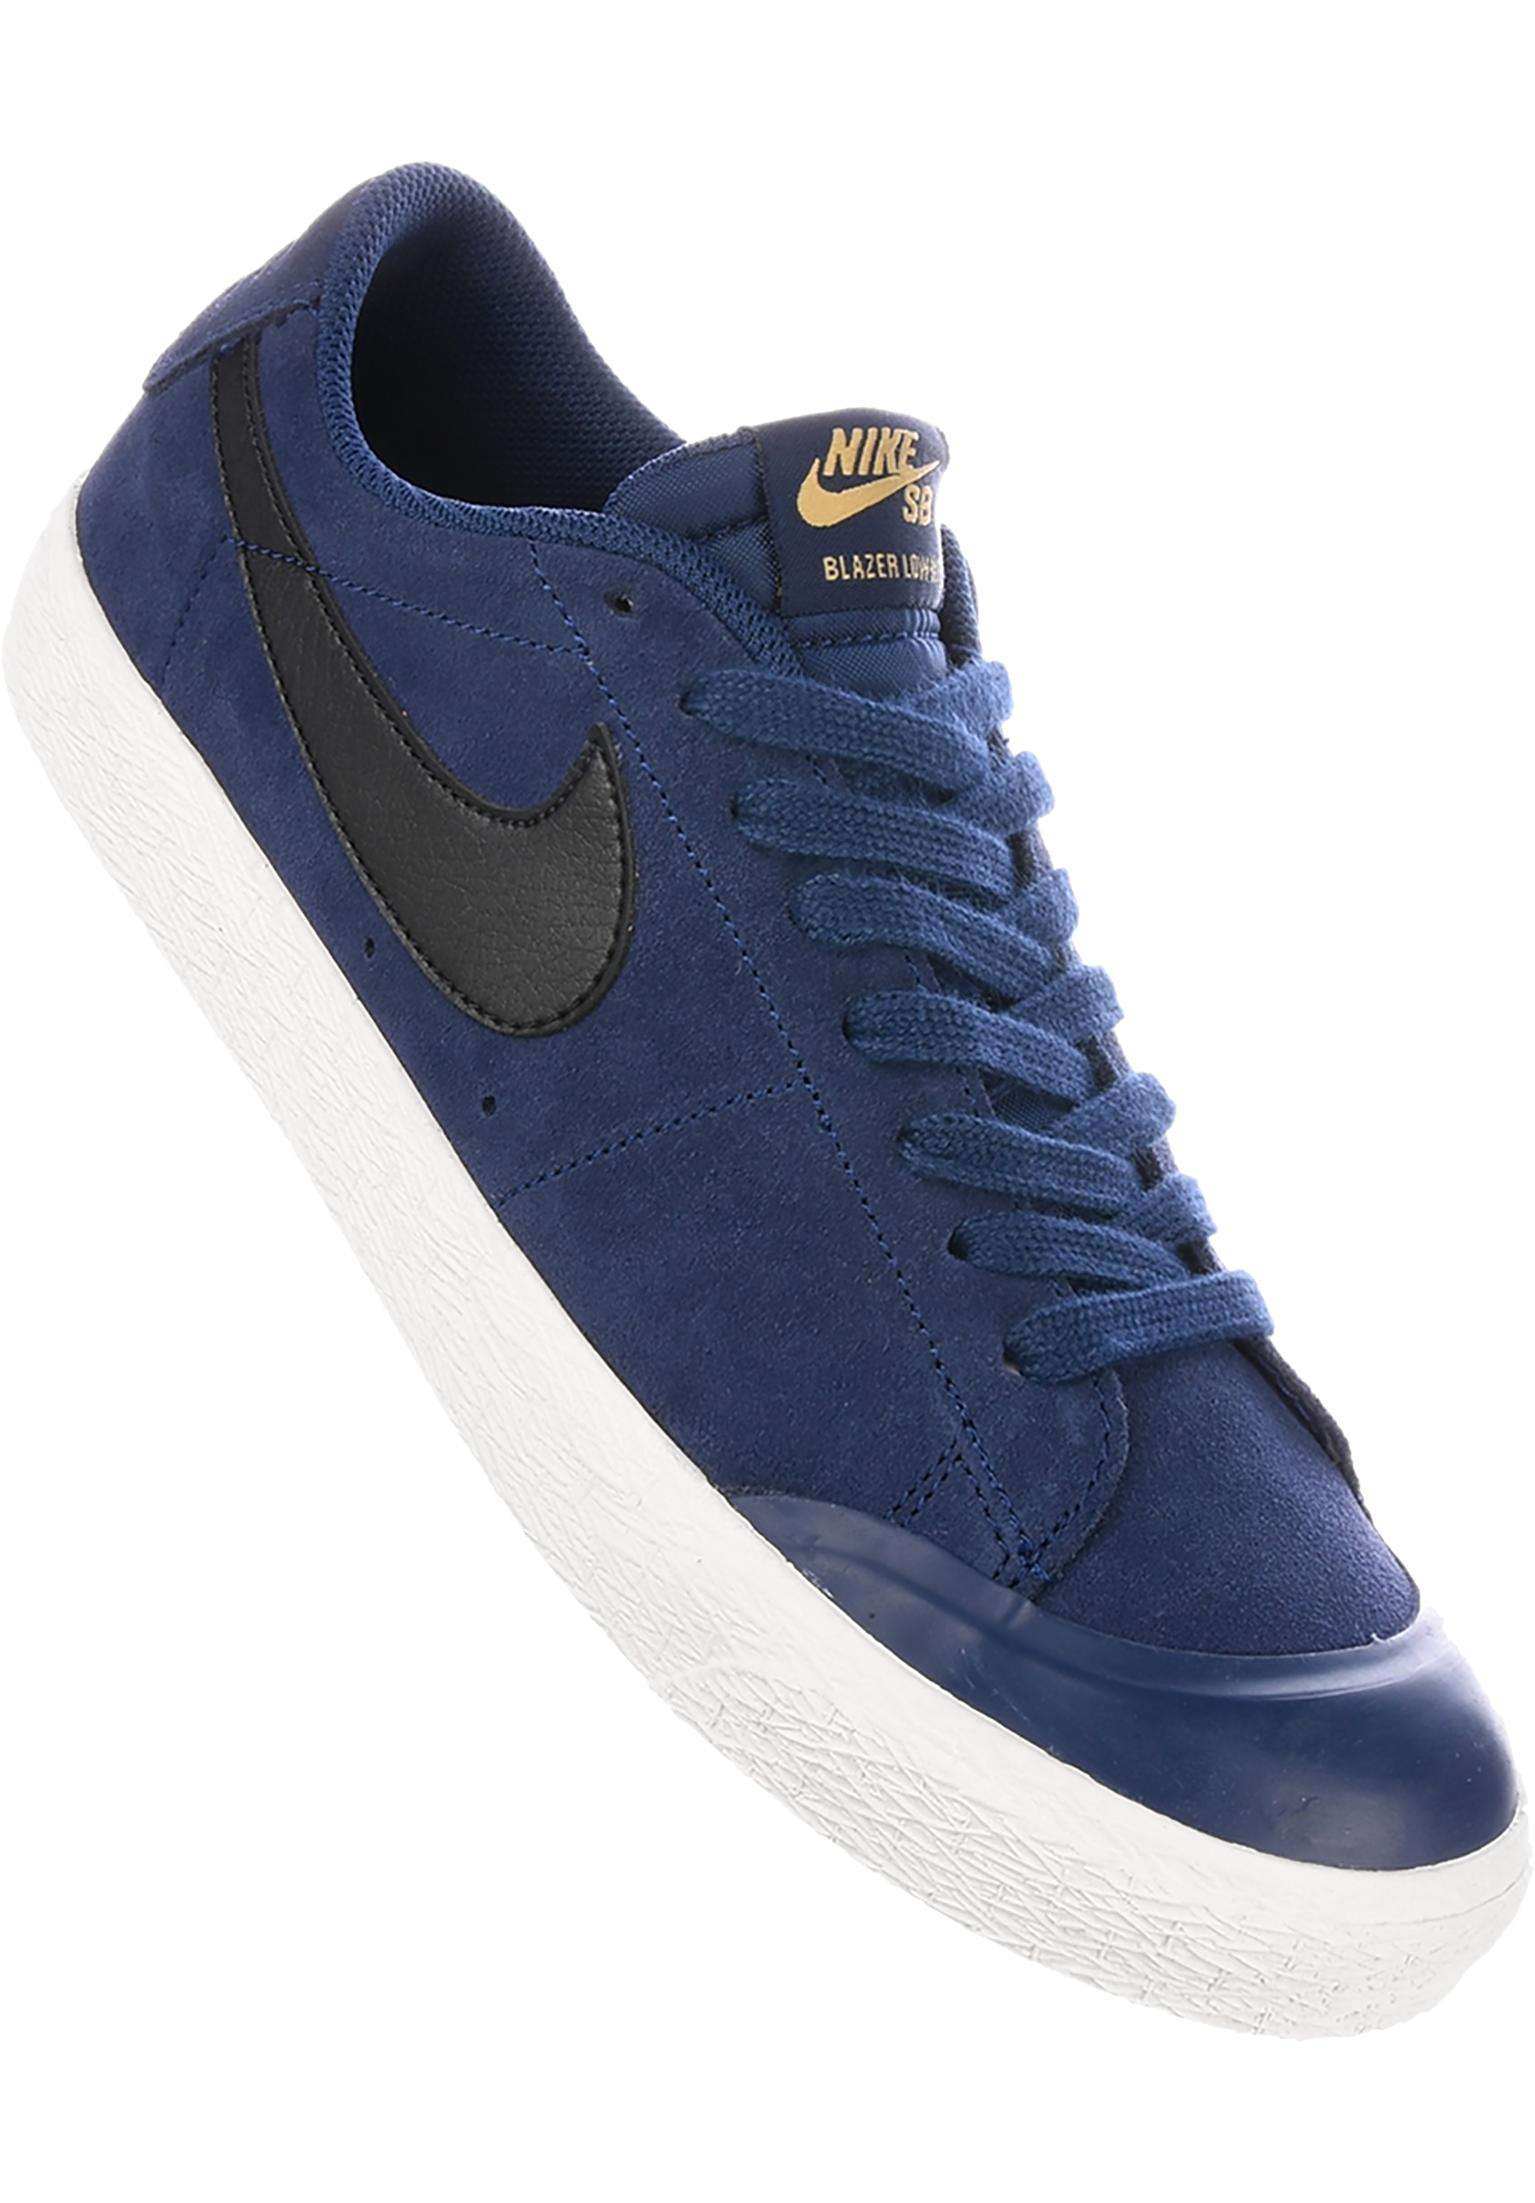 promo code 28fc9 a1101 Zoom Blazer Low XT Nike SB All Shoes in binaryblue-black for Men   Titus